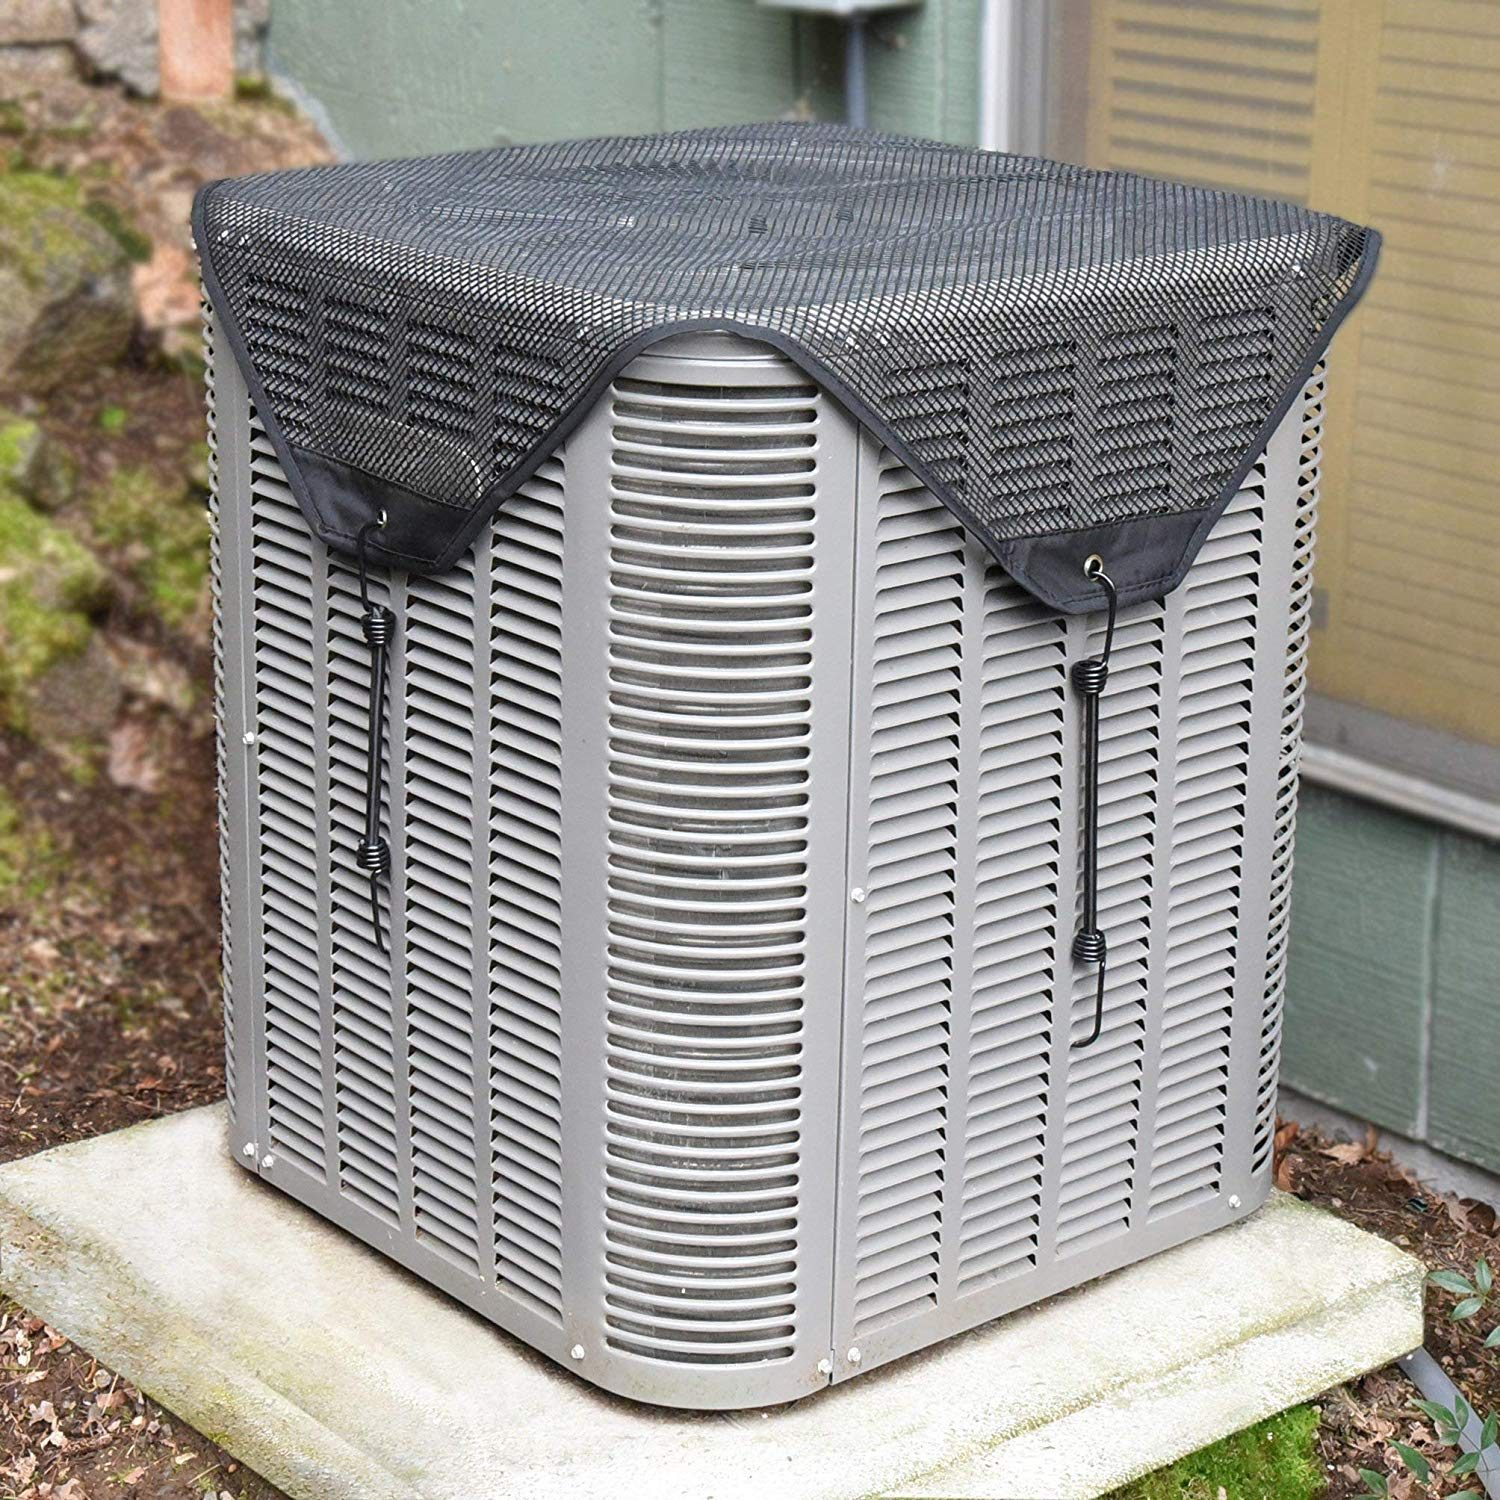 Air conditioner with cover